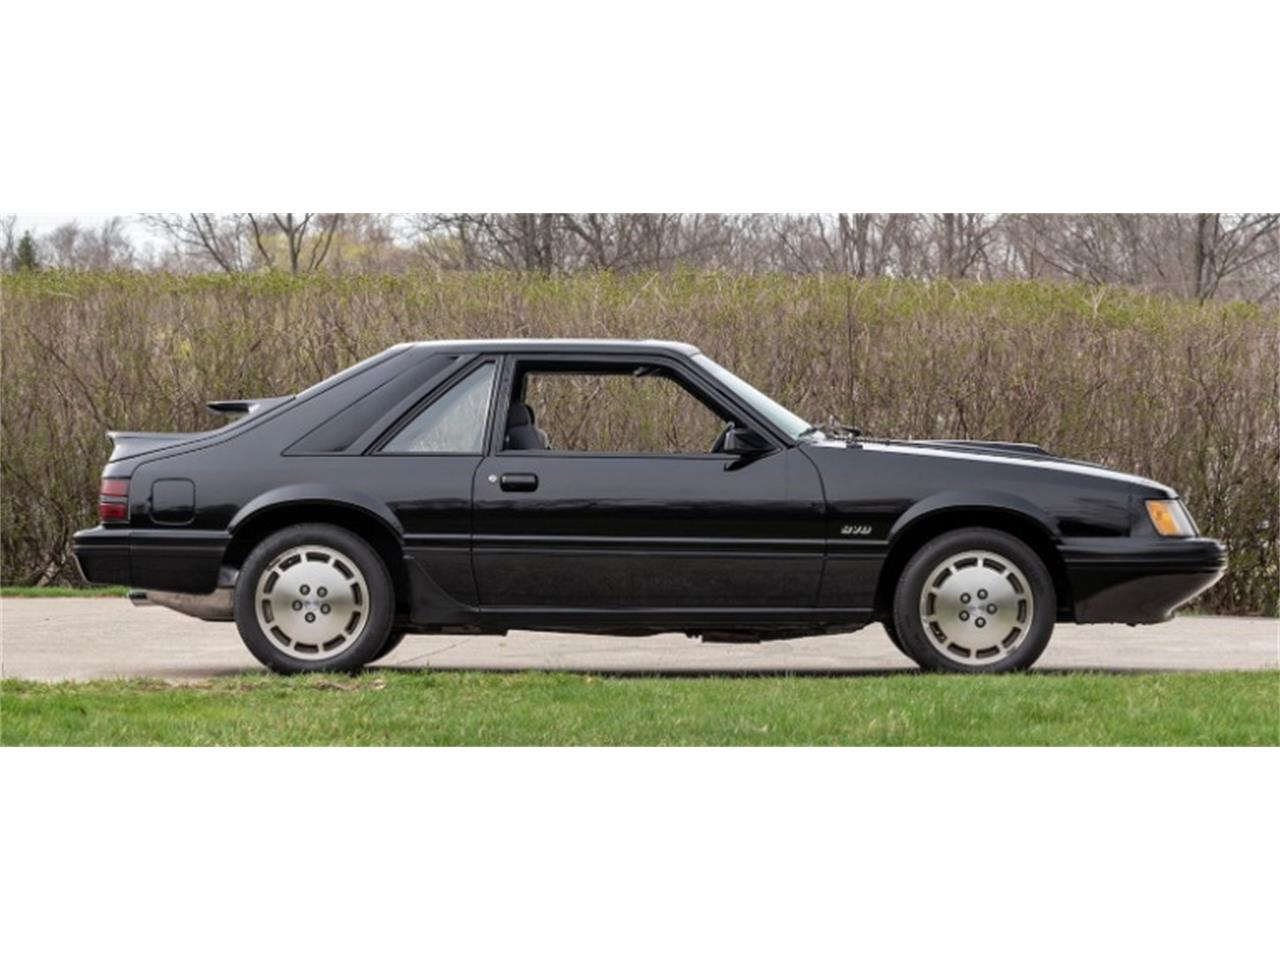 Large Picture of 1984 Ford Mustang located in Mundelein Illinois - $12,997.00 - Q46S